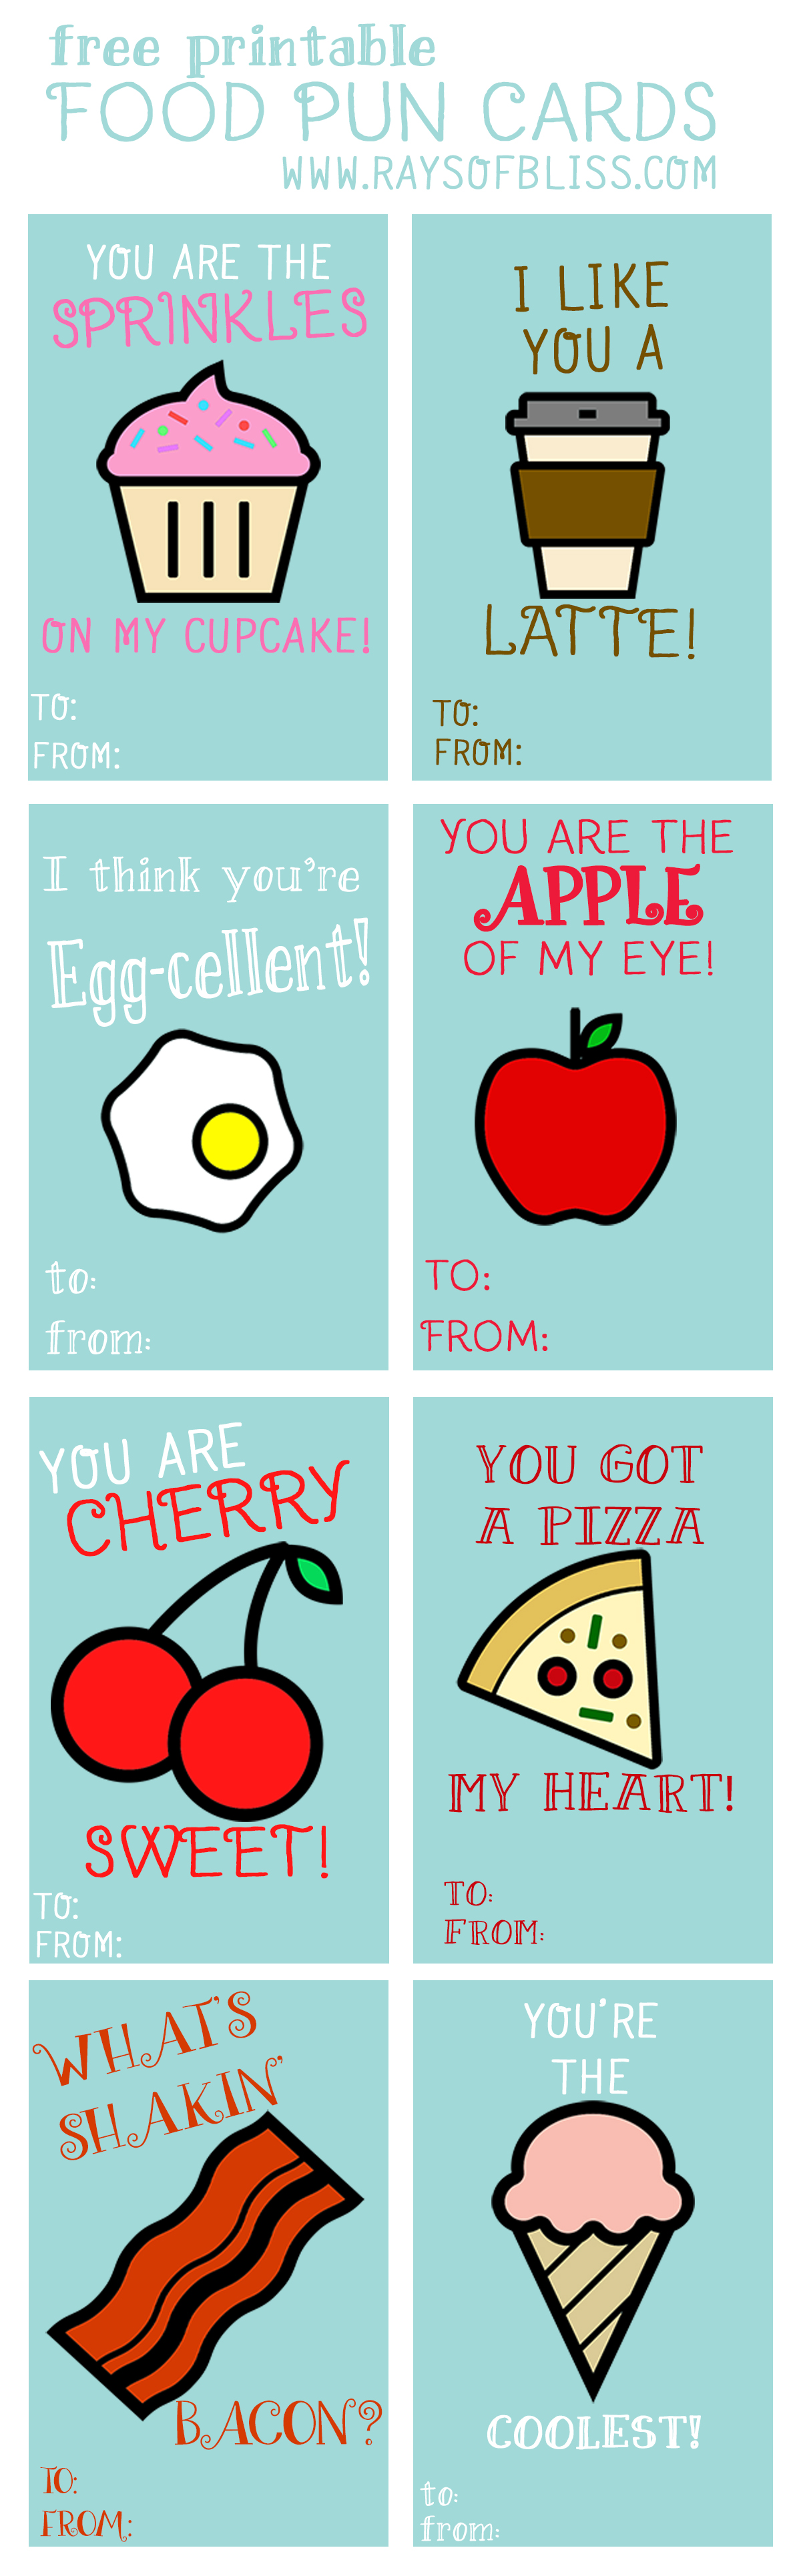 Food Pun Cards Free Printable - Rays of Bliss